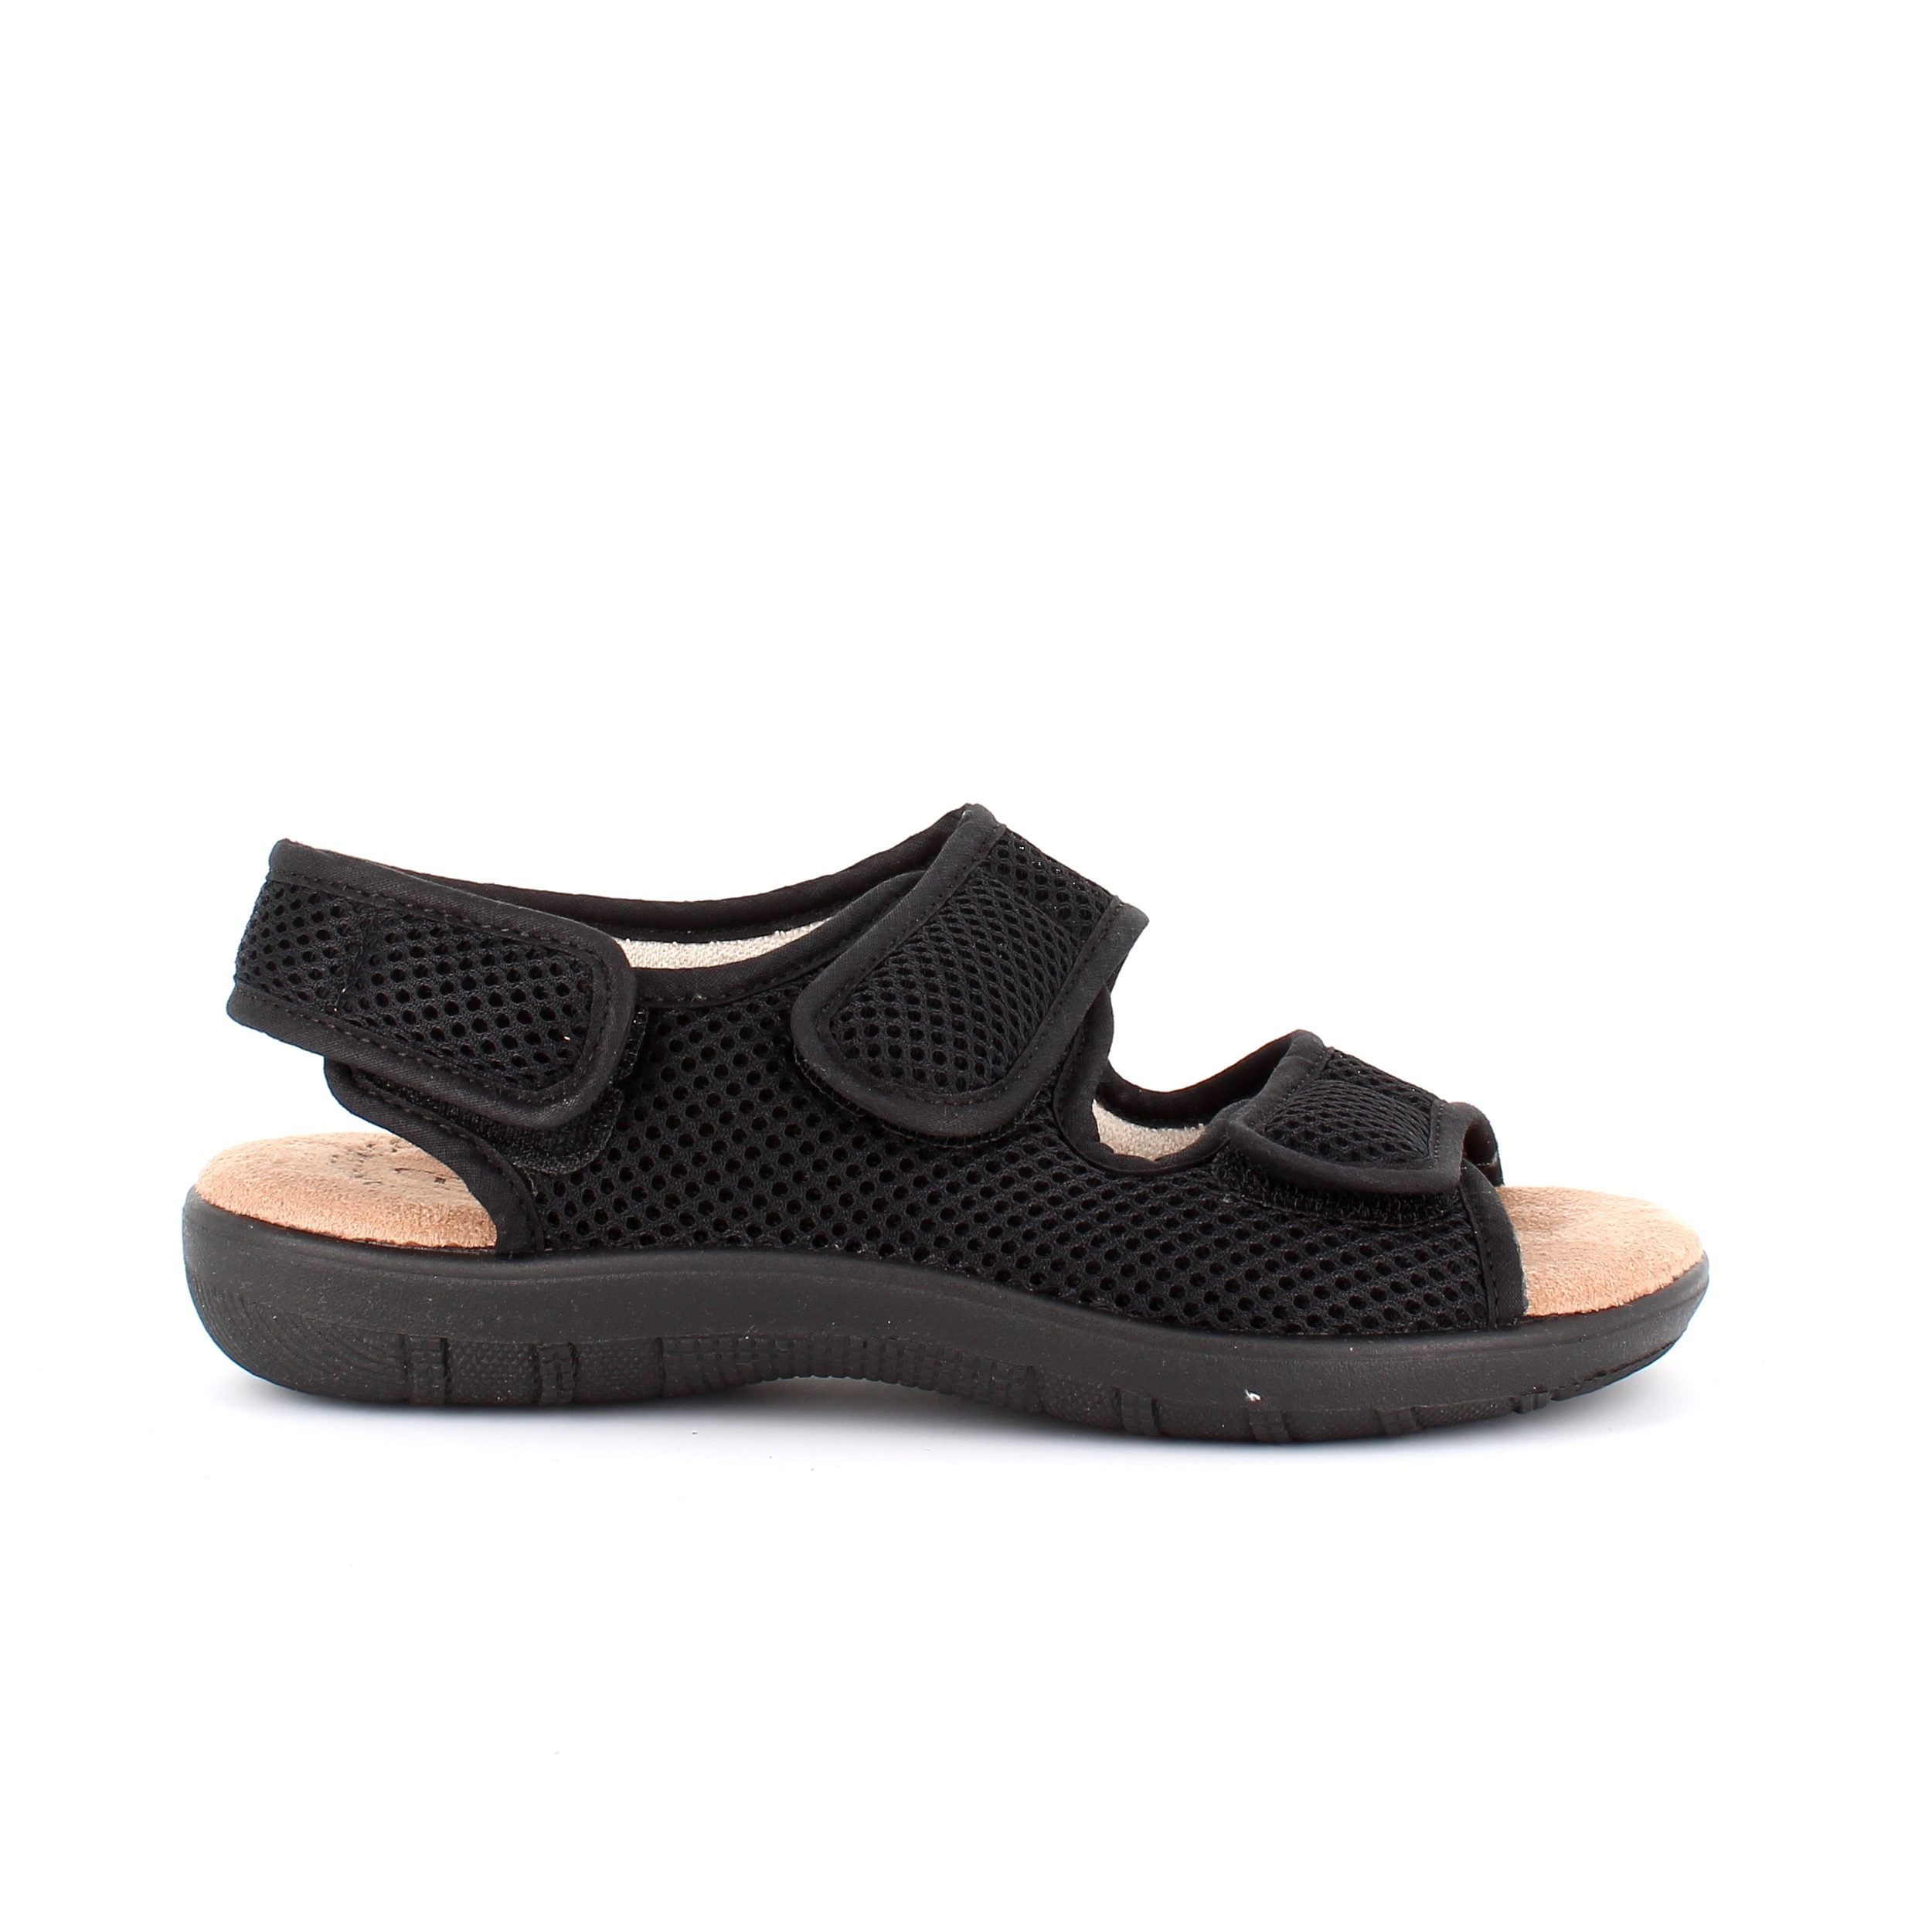 Image of   Anatomisk soft sandal - 36